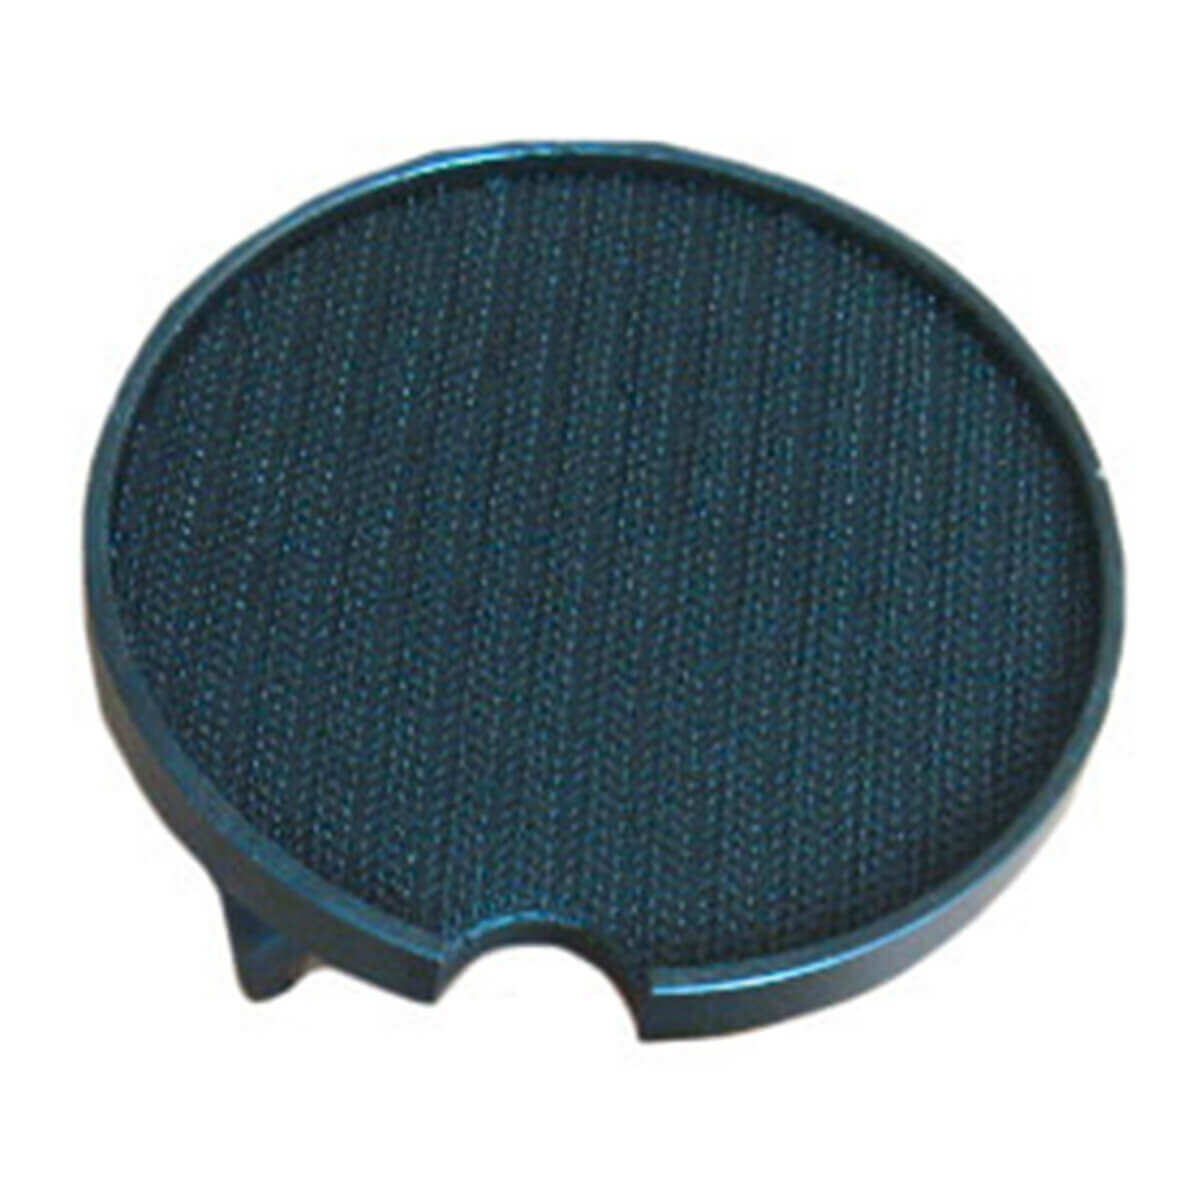 Velcro Polishing Plates 350.5666 Used to attach the Polishing Tools to the Quick Release Plate